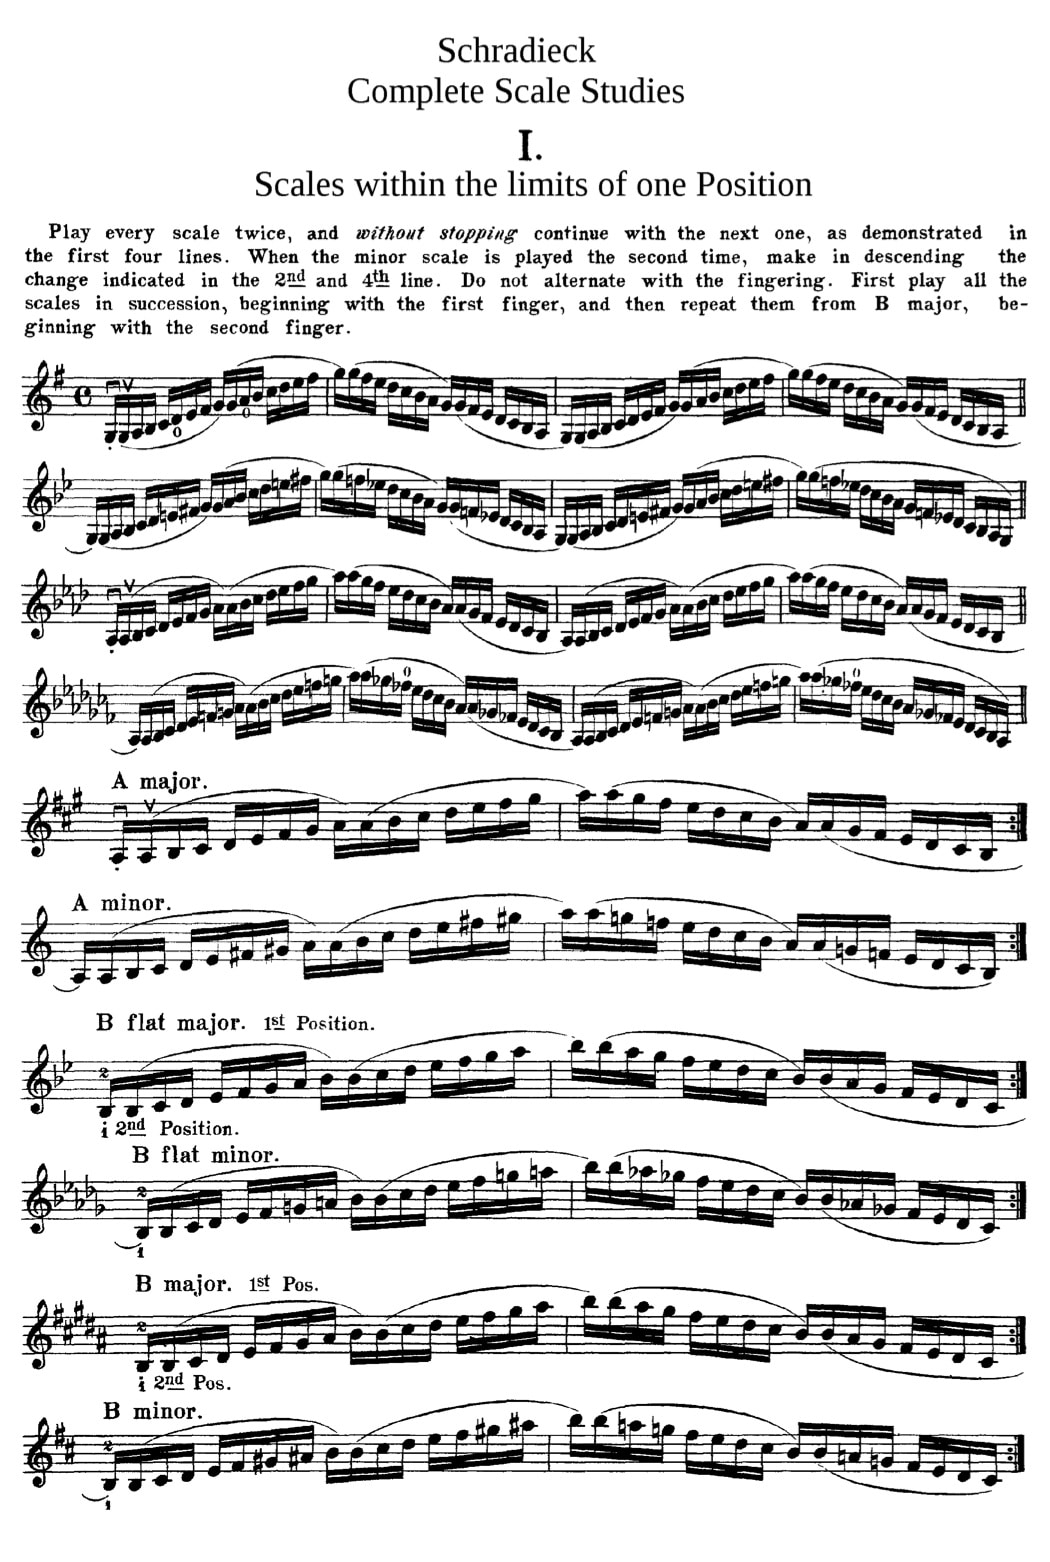 Schradieck Complete Scale-Studies For the Violin in action